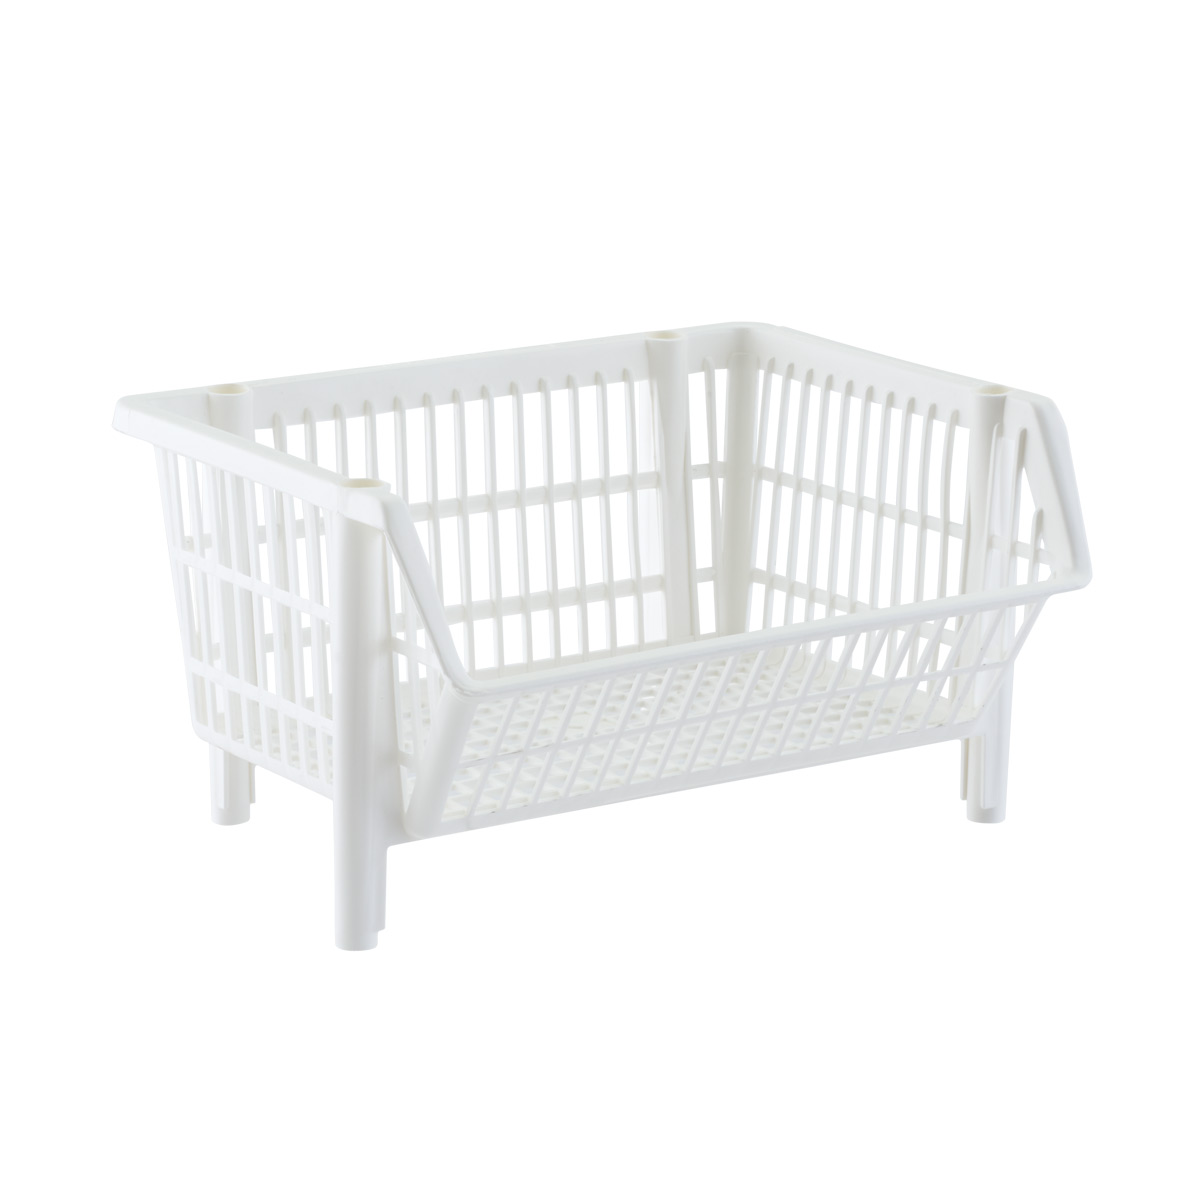 Our Basic White Stackable Baskets